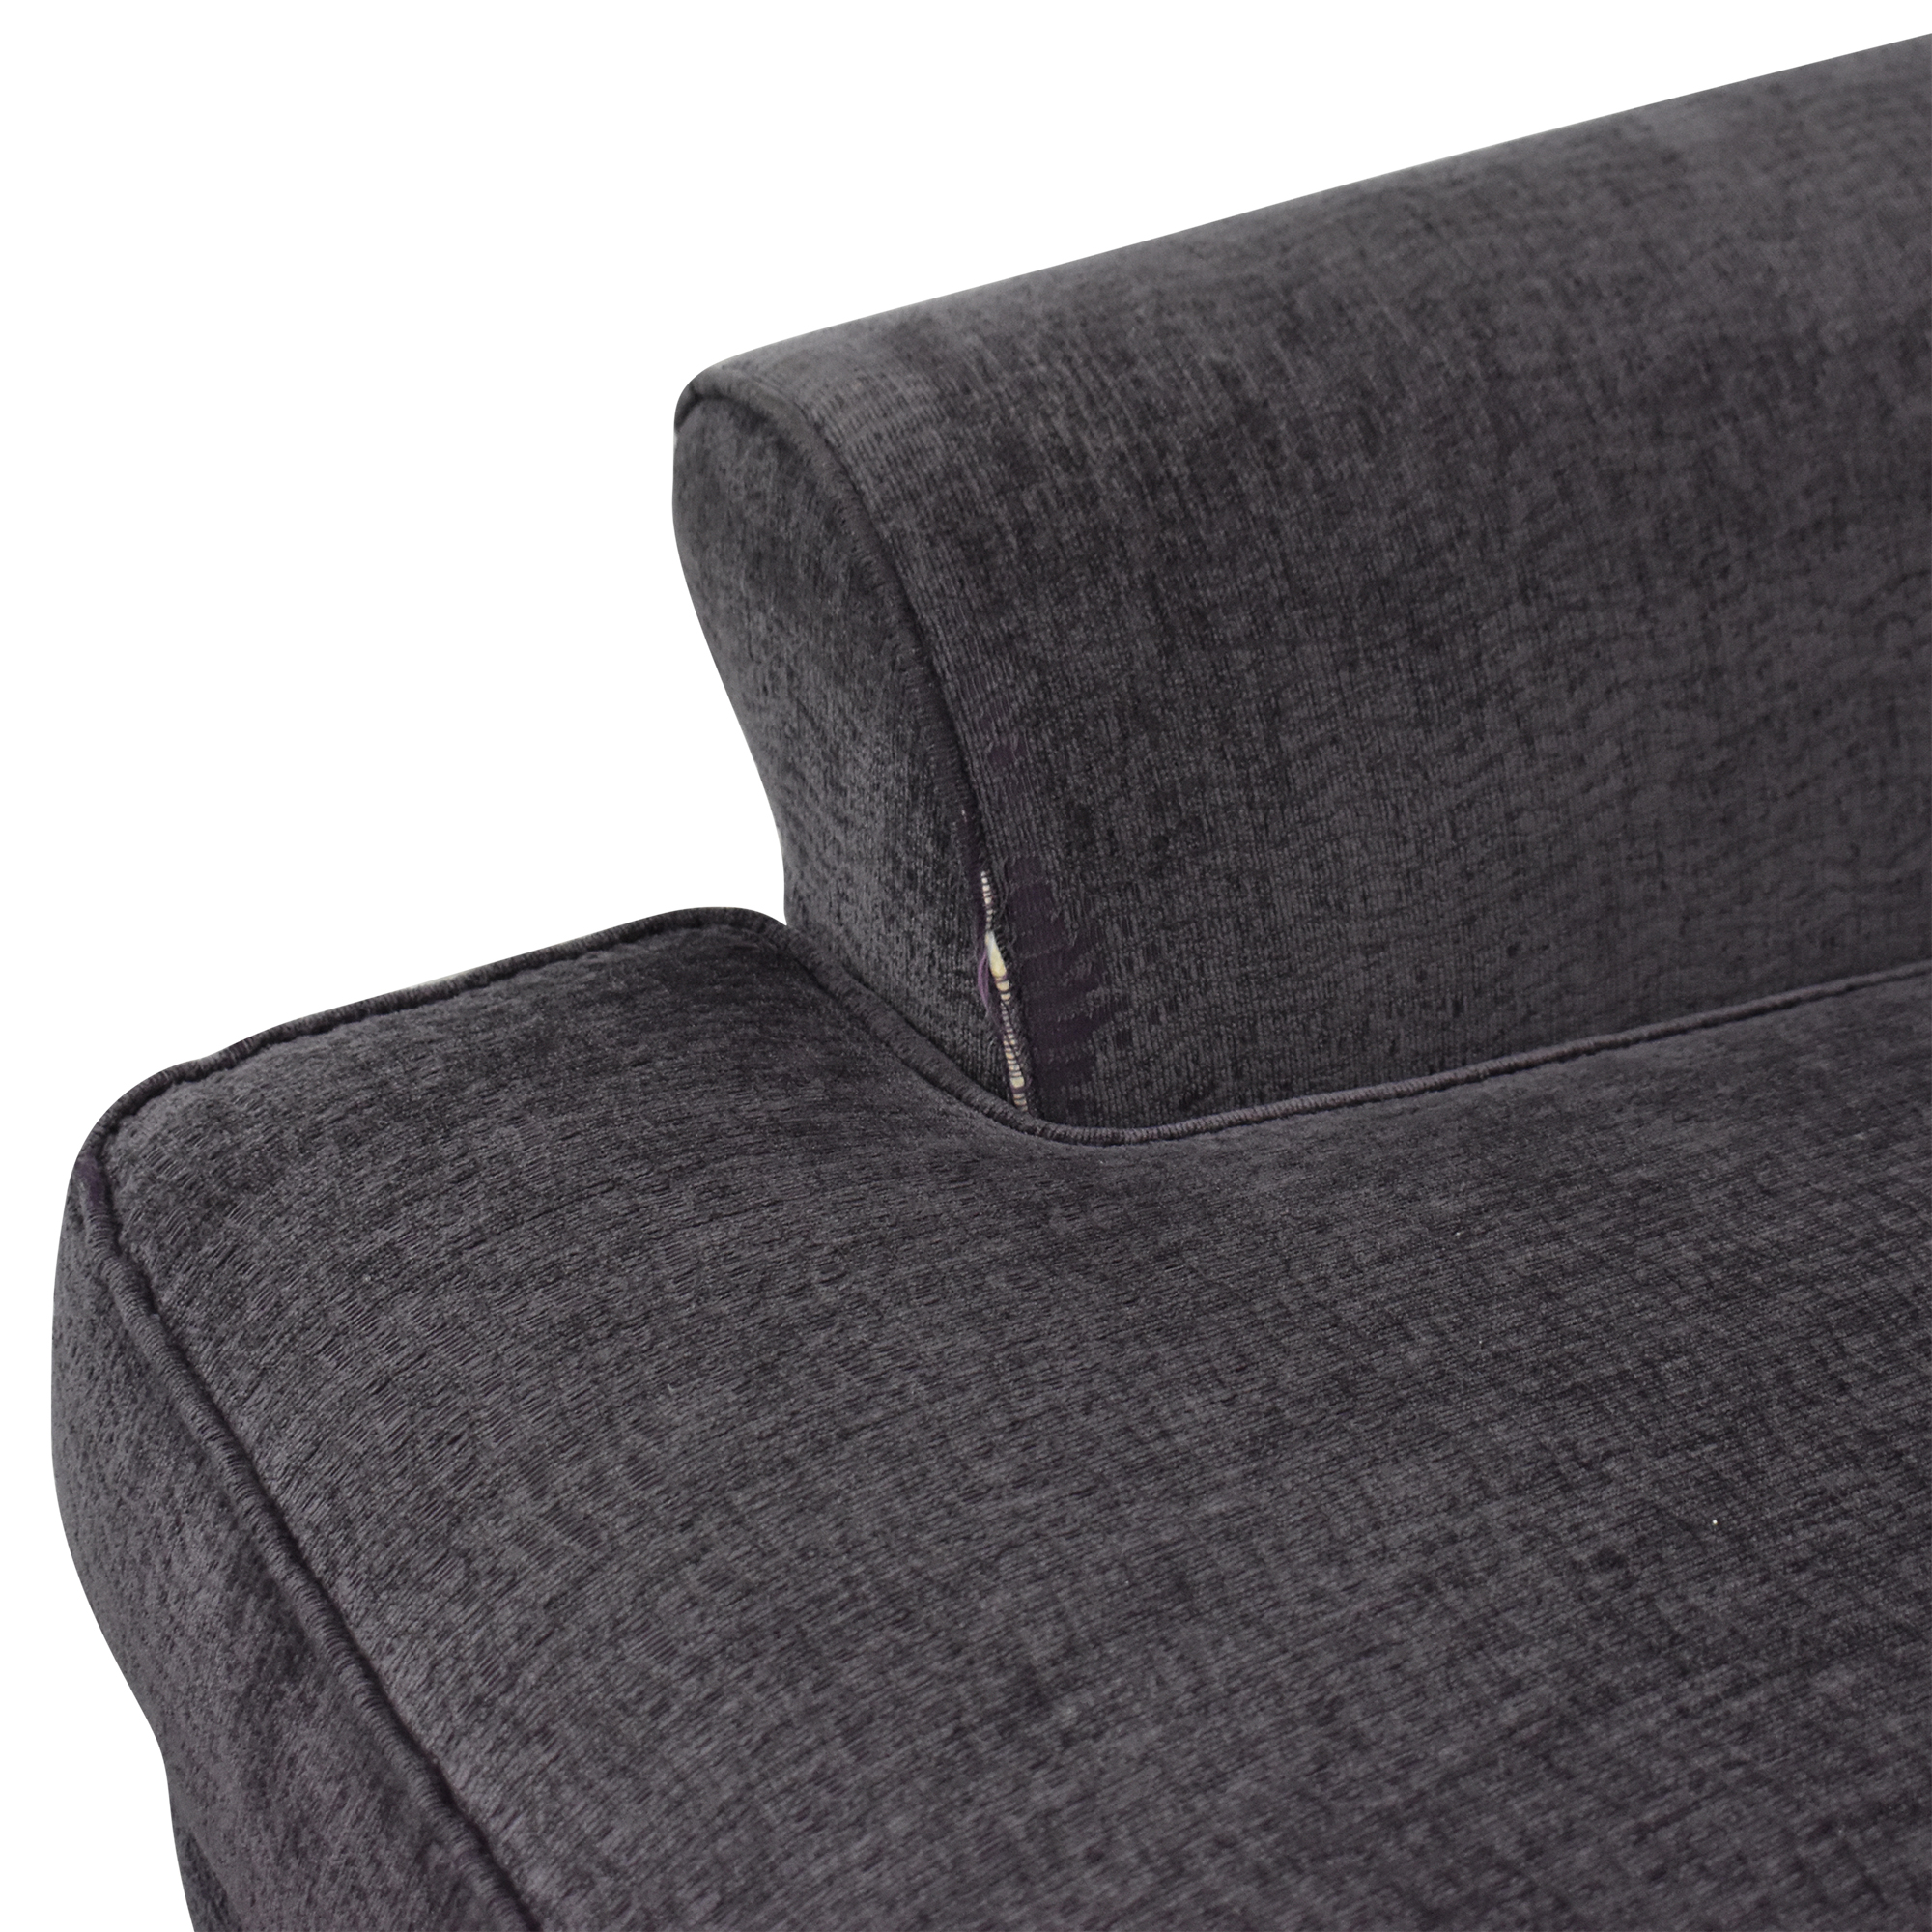 Carter Furniture Carter Double Wide Chair ma